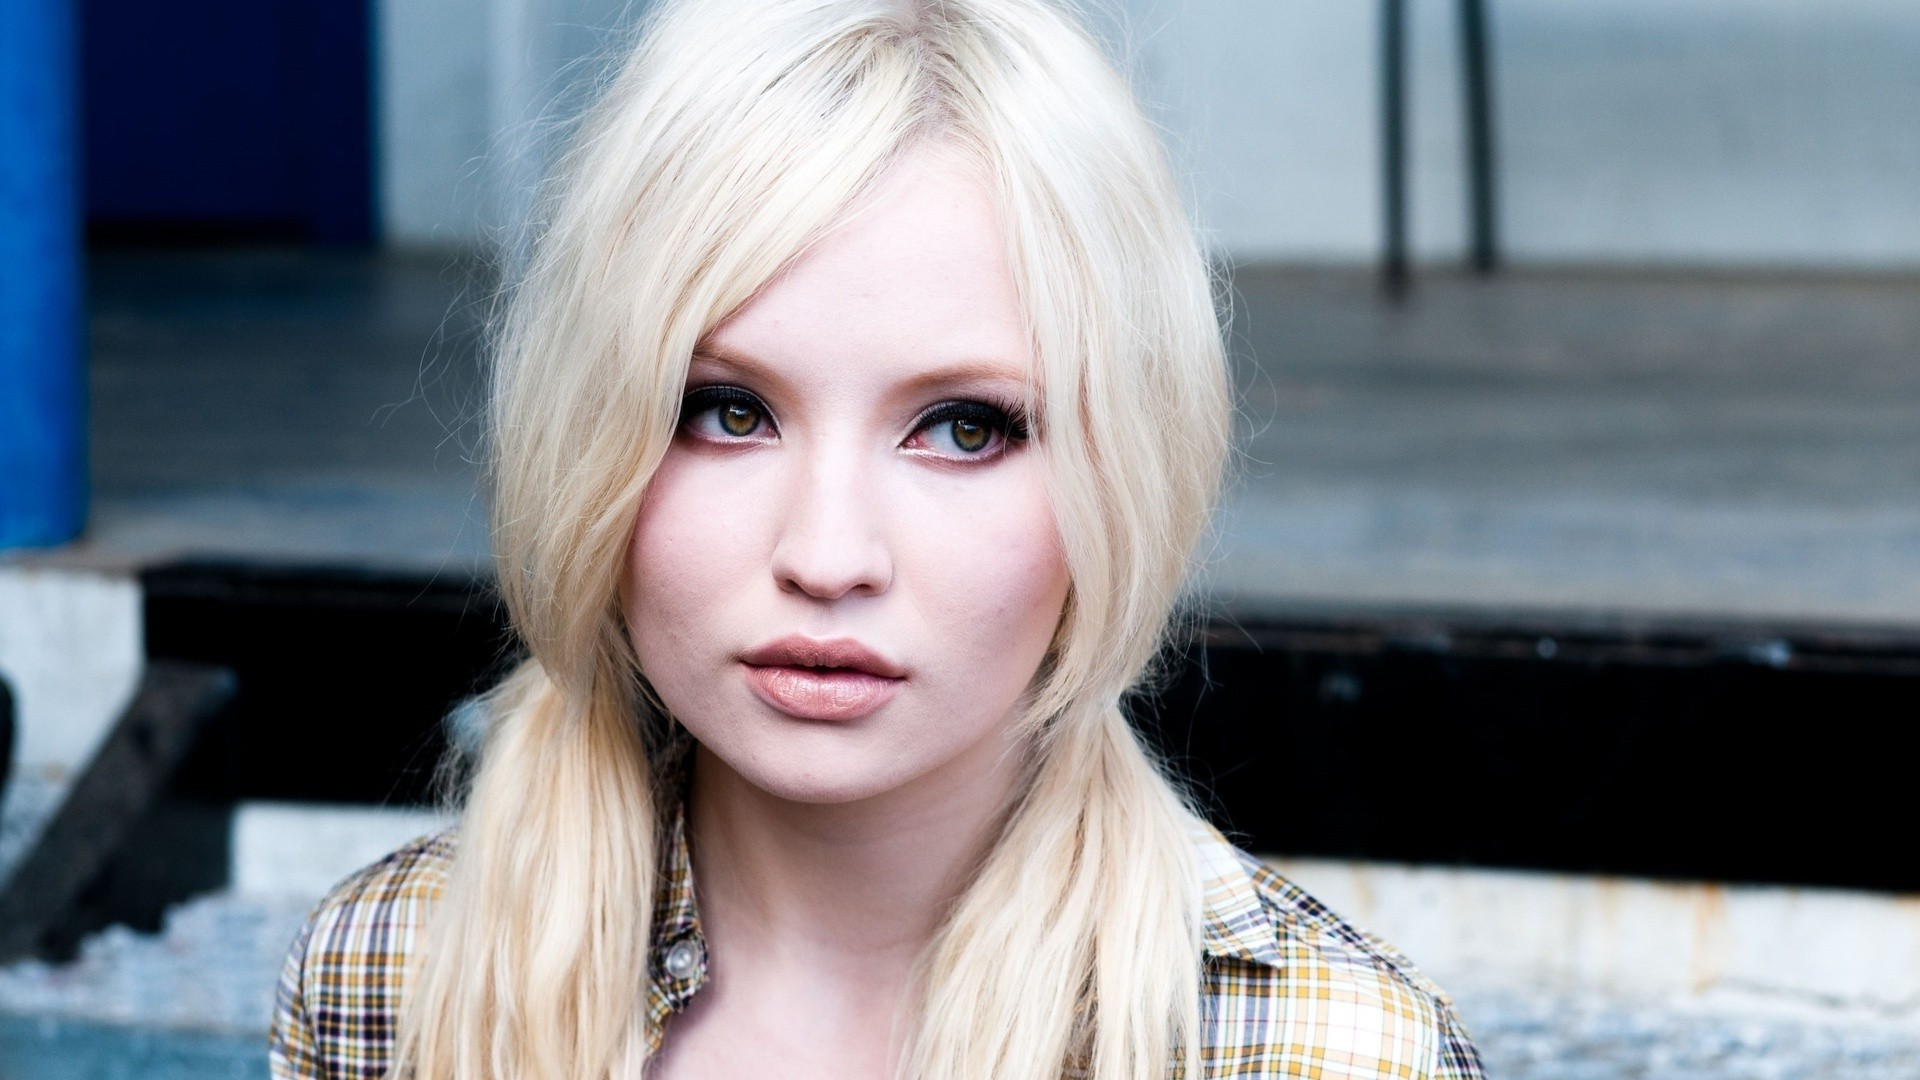 Girl Image Wallpaper Free Download Emily Browning Hd Wallpapers For Desktop Download